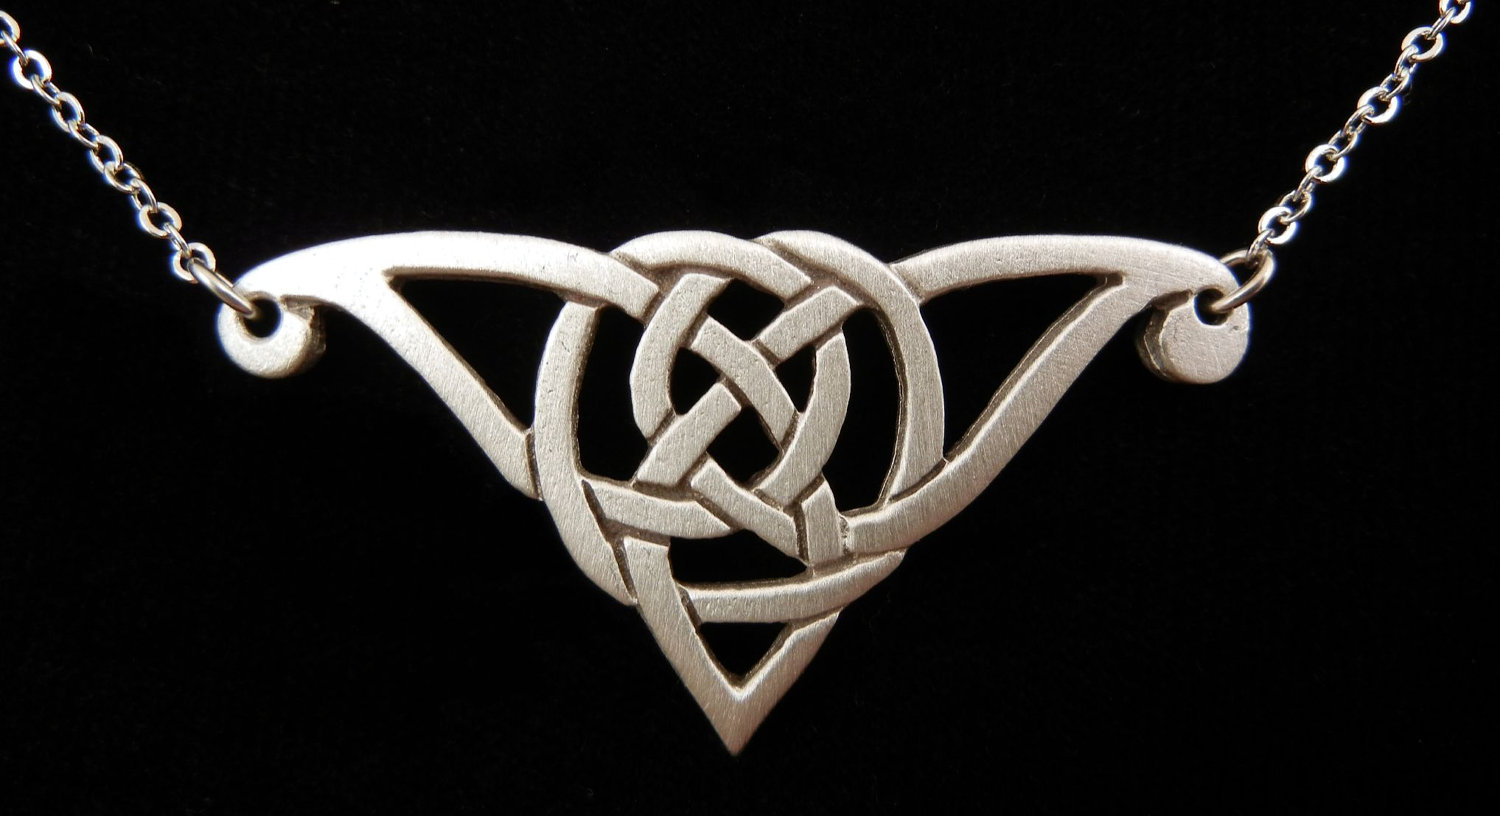 celtic jewelry ... http://img2.etsystatic.com/000/0/5430253/ ynqchje